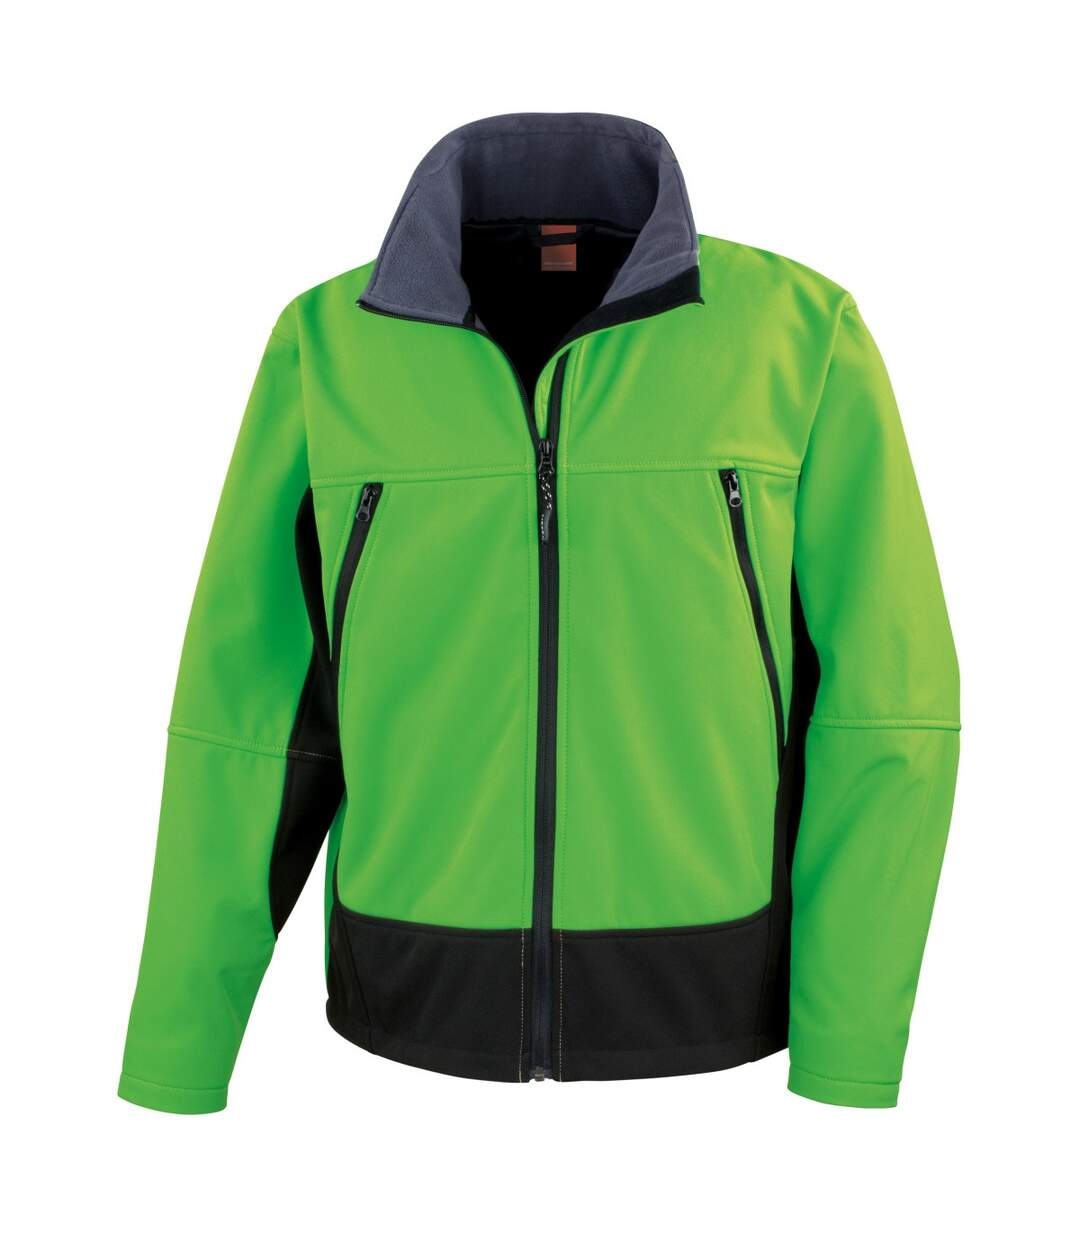 Result Mens Softshell Activity Waterproof Windproof Jacket (Vivid Green/Black) - UTBC856